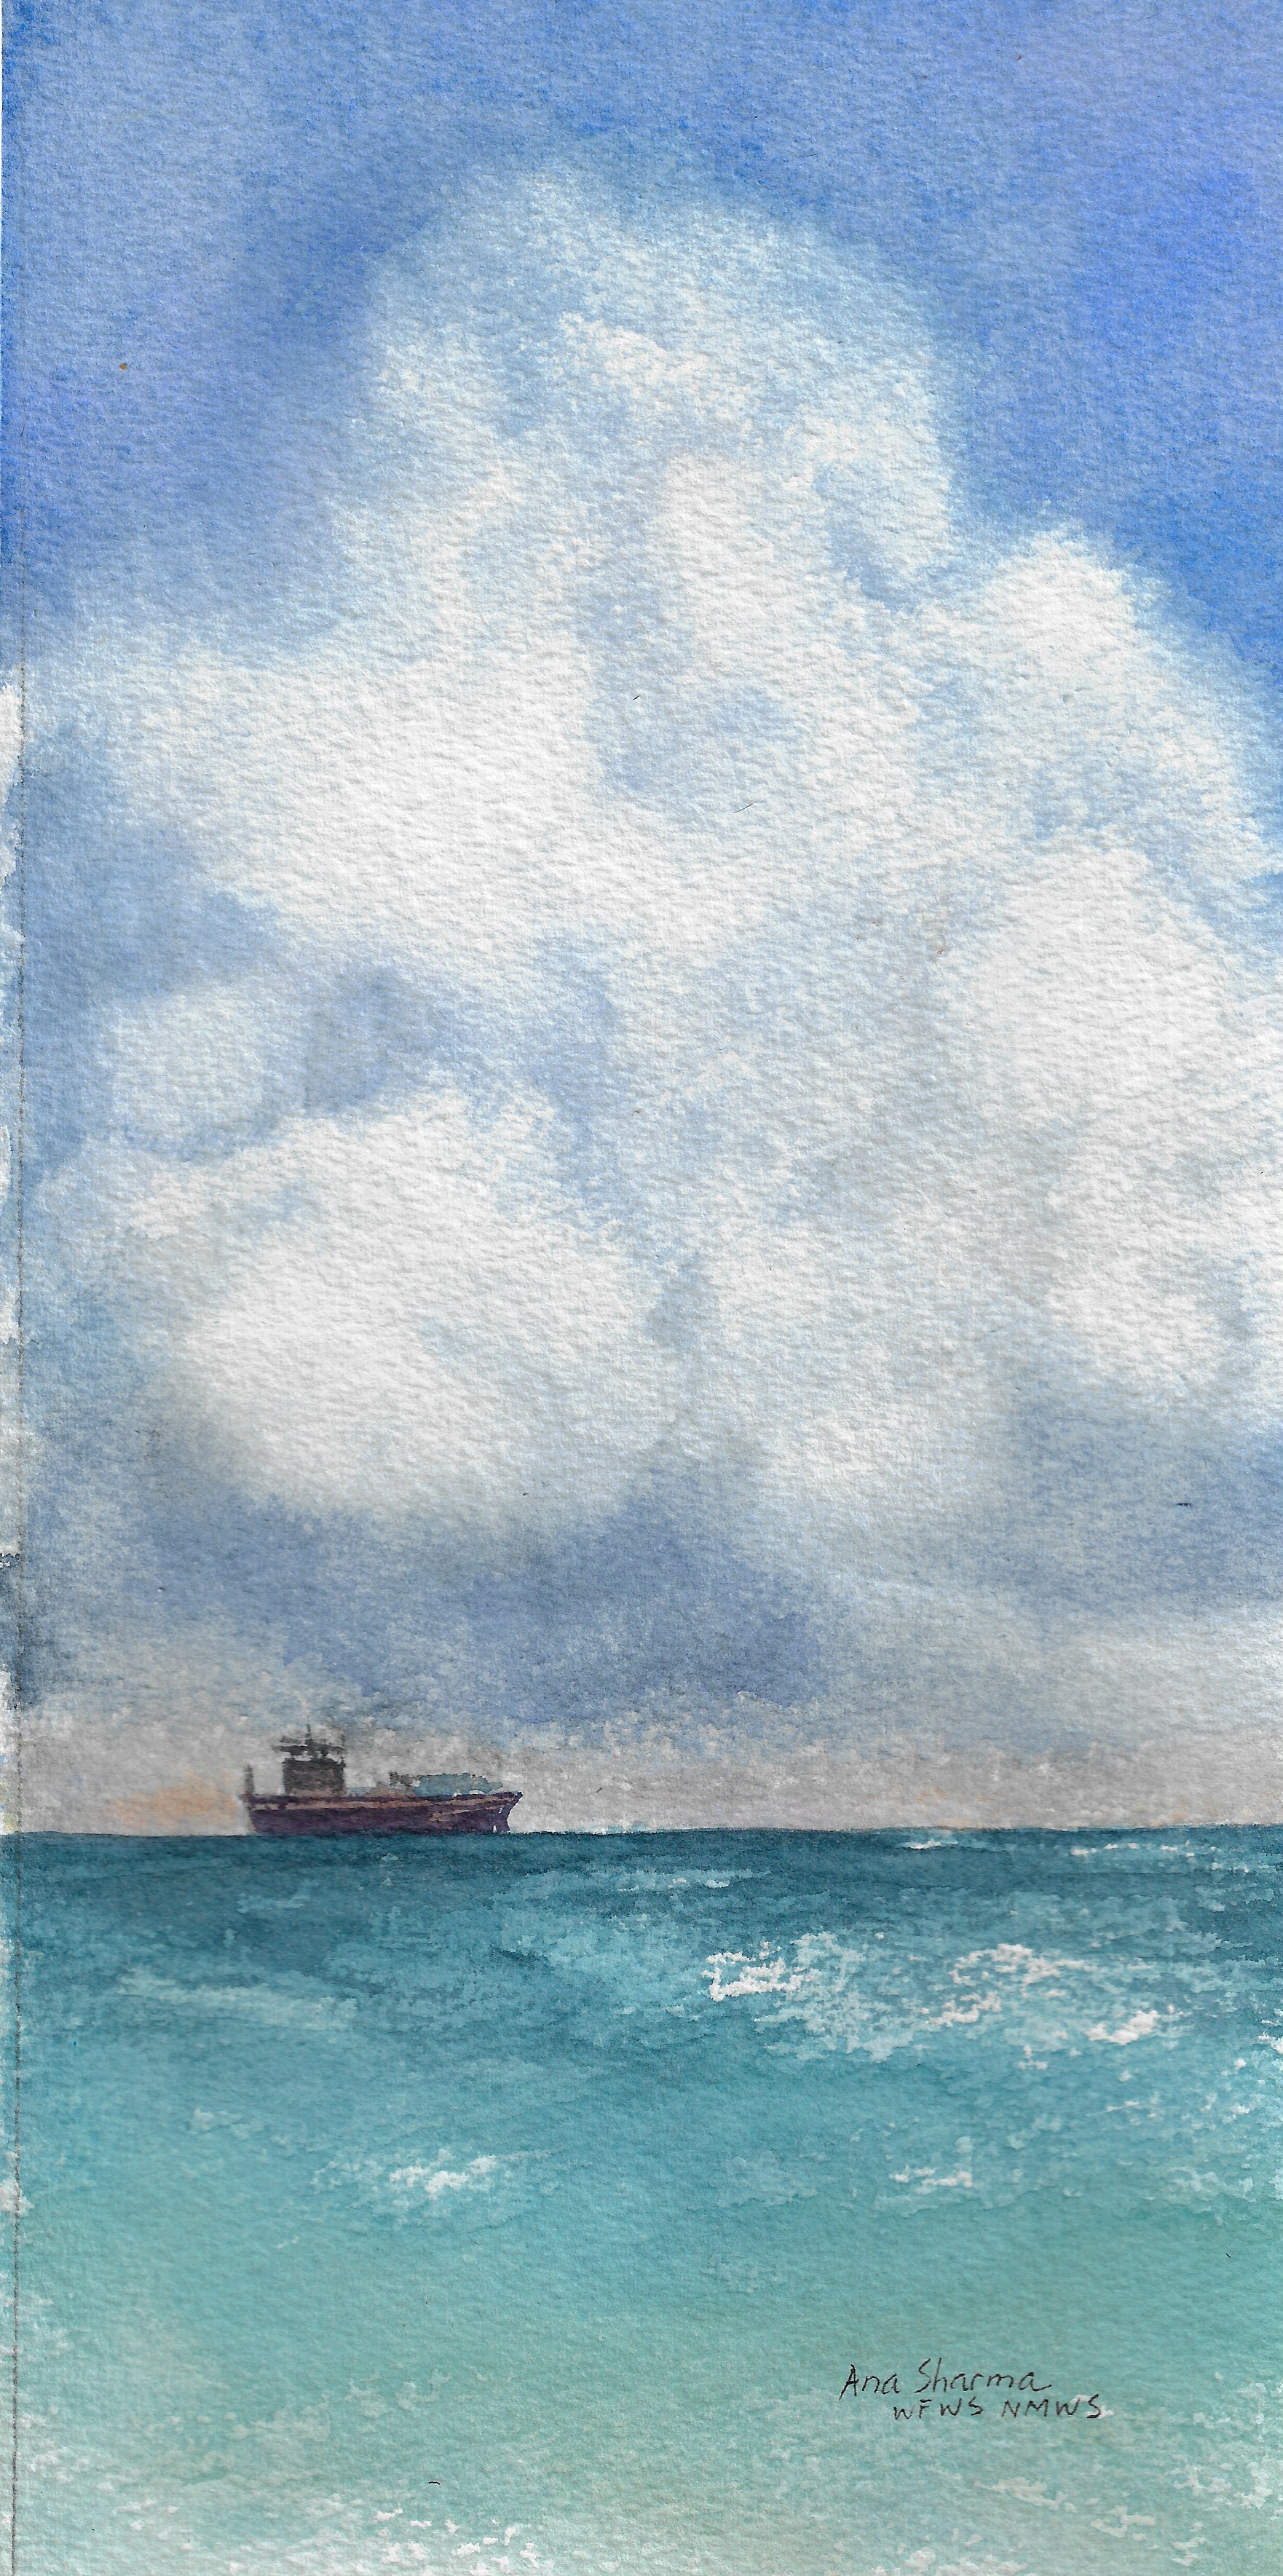 Sea & Sky of Galveston I